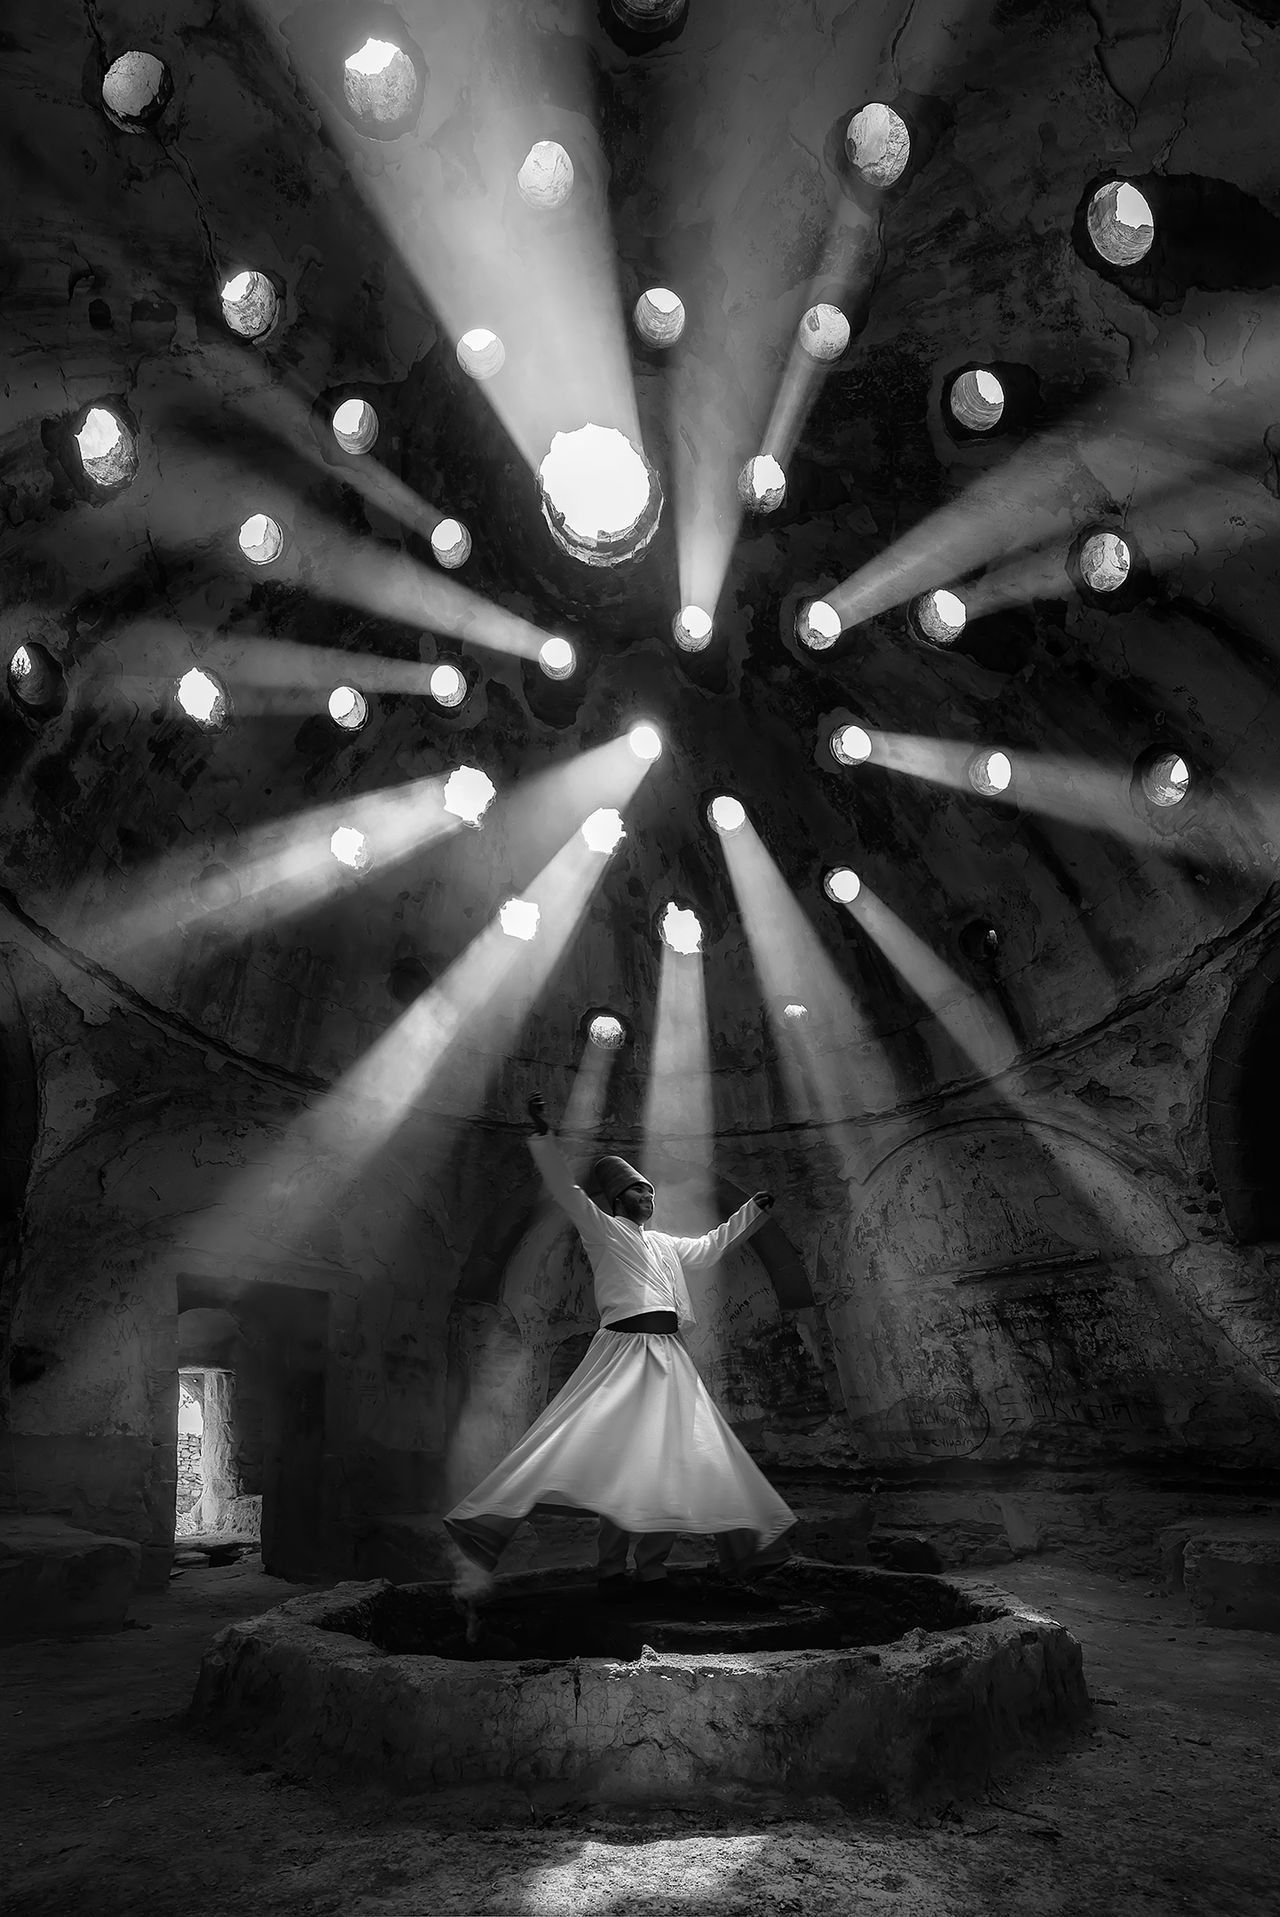 Worship, © F. Dilek uyar, First Place Winner, People, National Geographic Travel Photographer of the Year